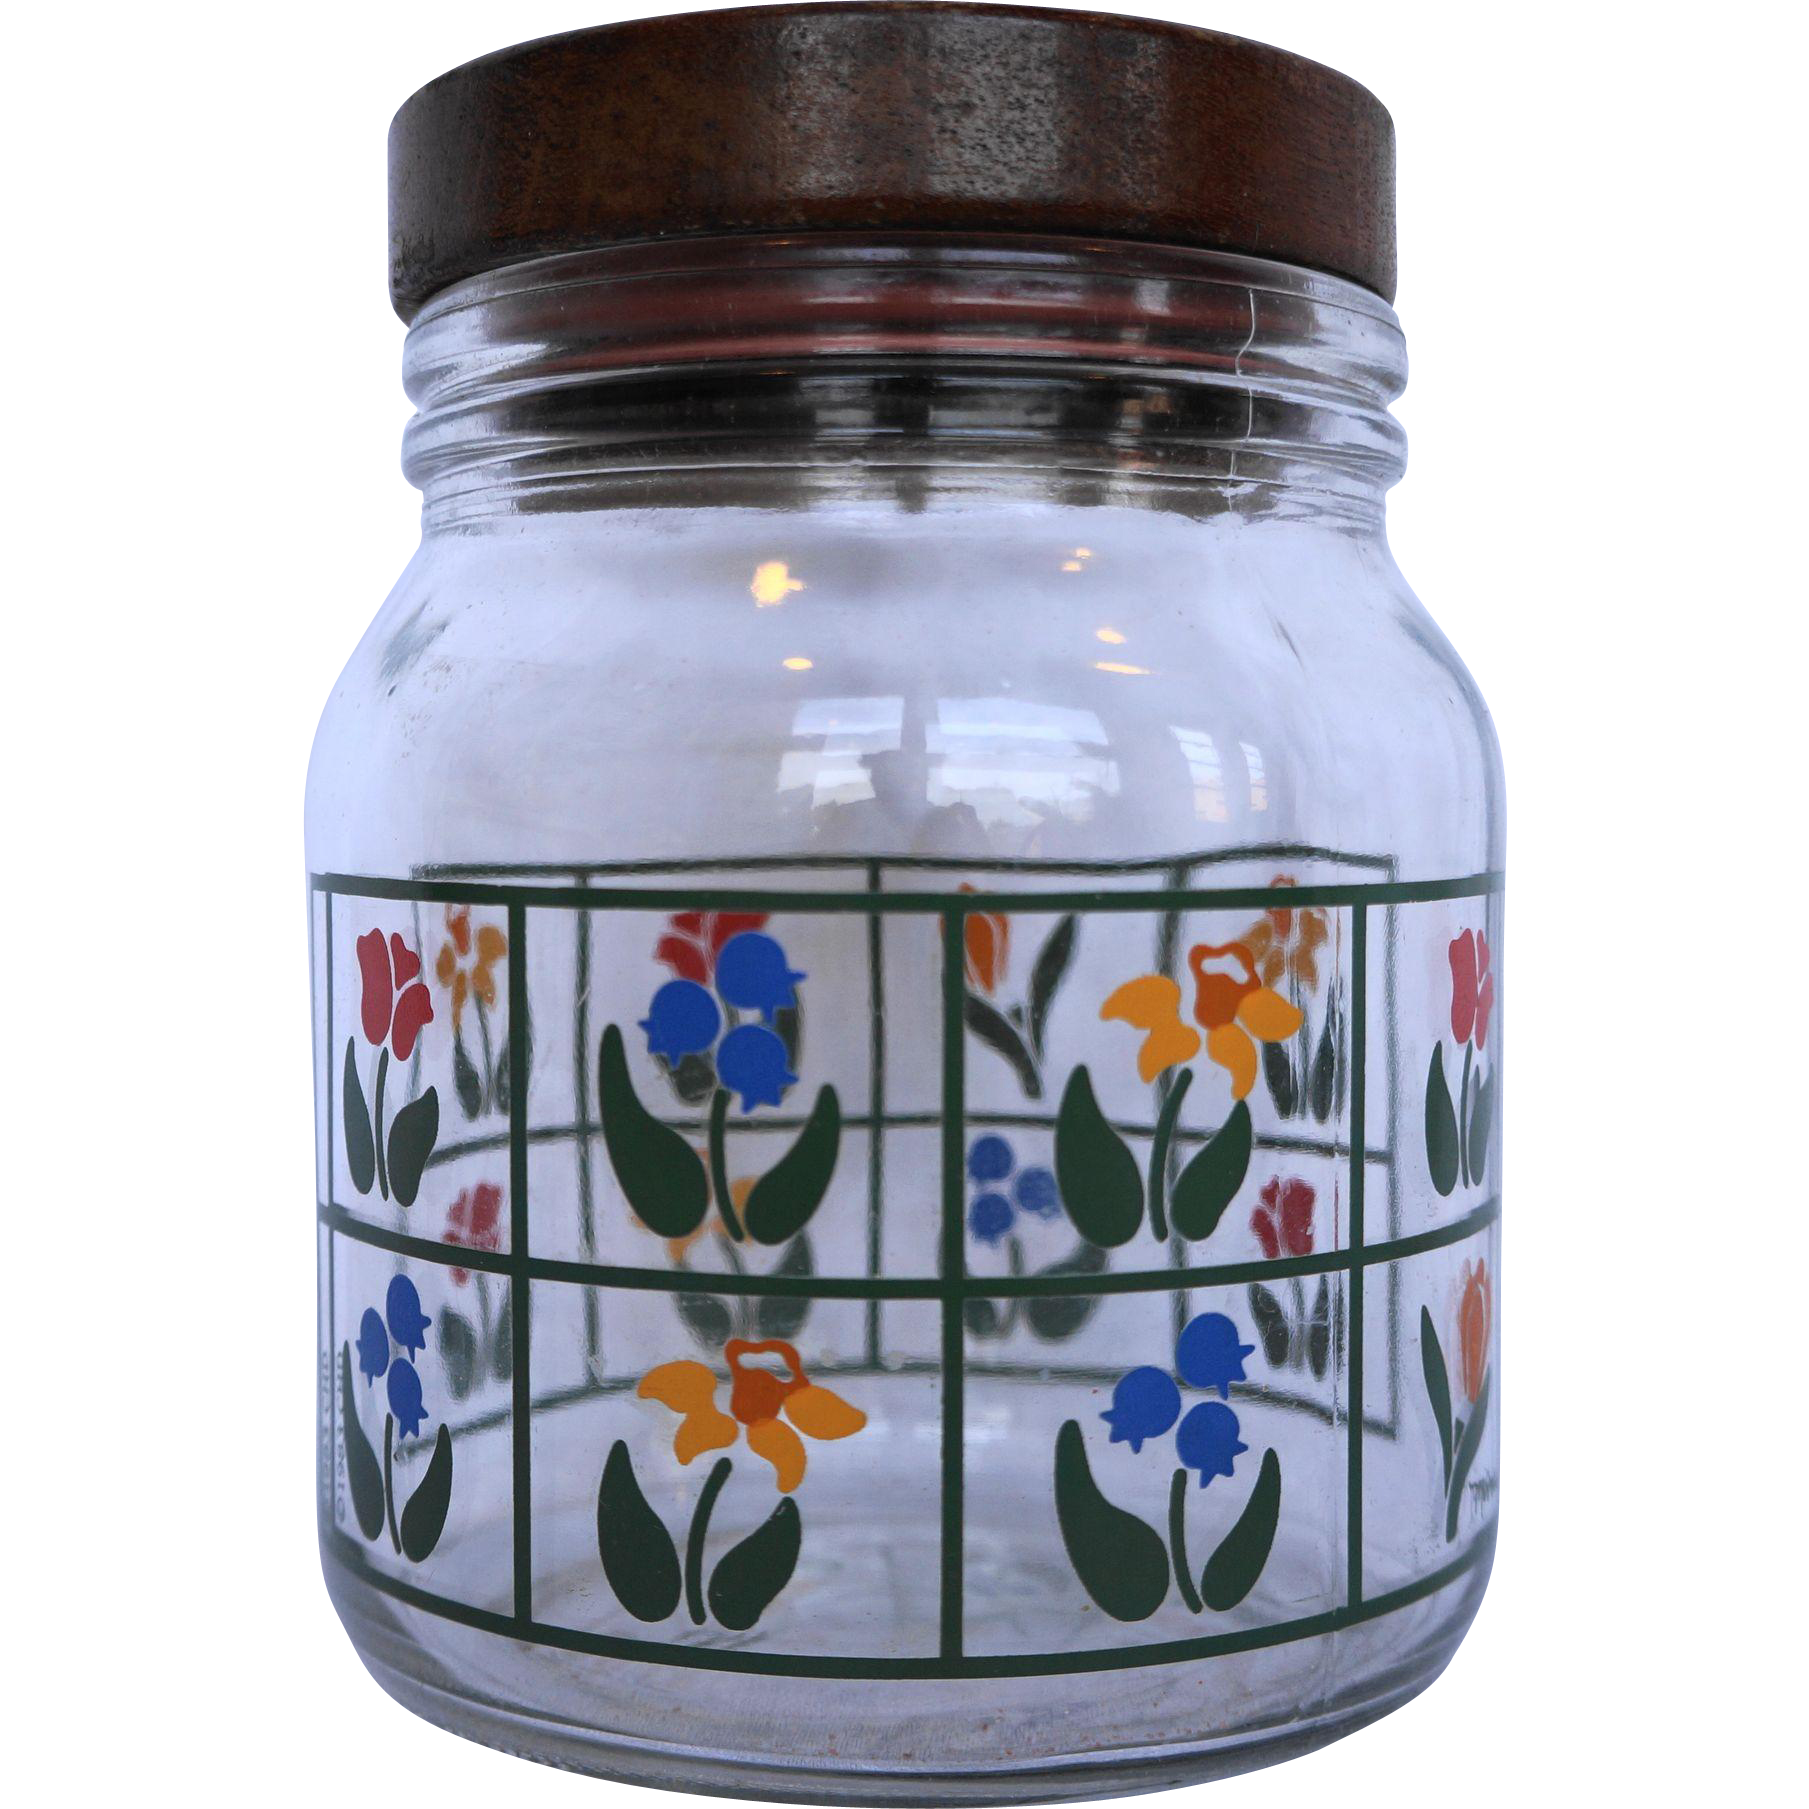 Nina Greenhouse Floral Glass Canister Wooden Lid Anchor Hocking 1980s